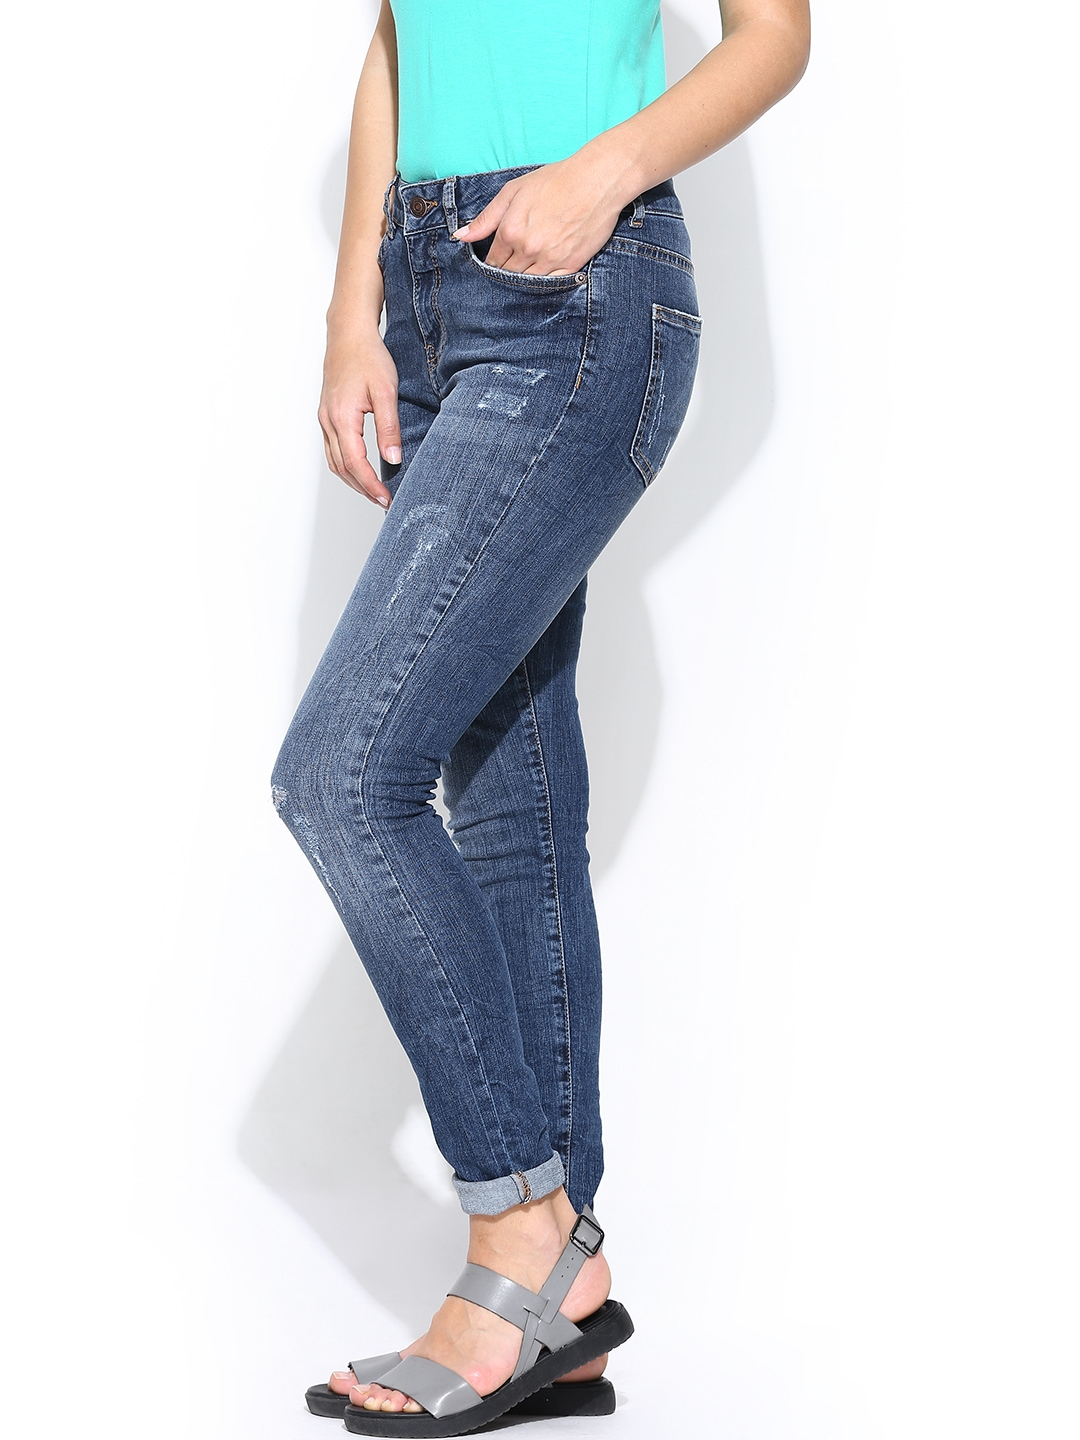 myntra vero moda women blue slim fit jeans 726833 buy myntra vero moda jeans at best price. Black Bedroom Furniture Sets. Home Design Ideas